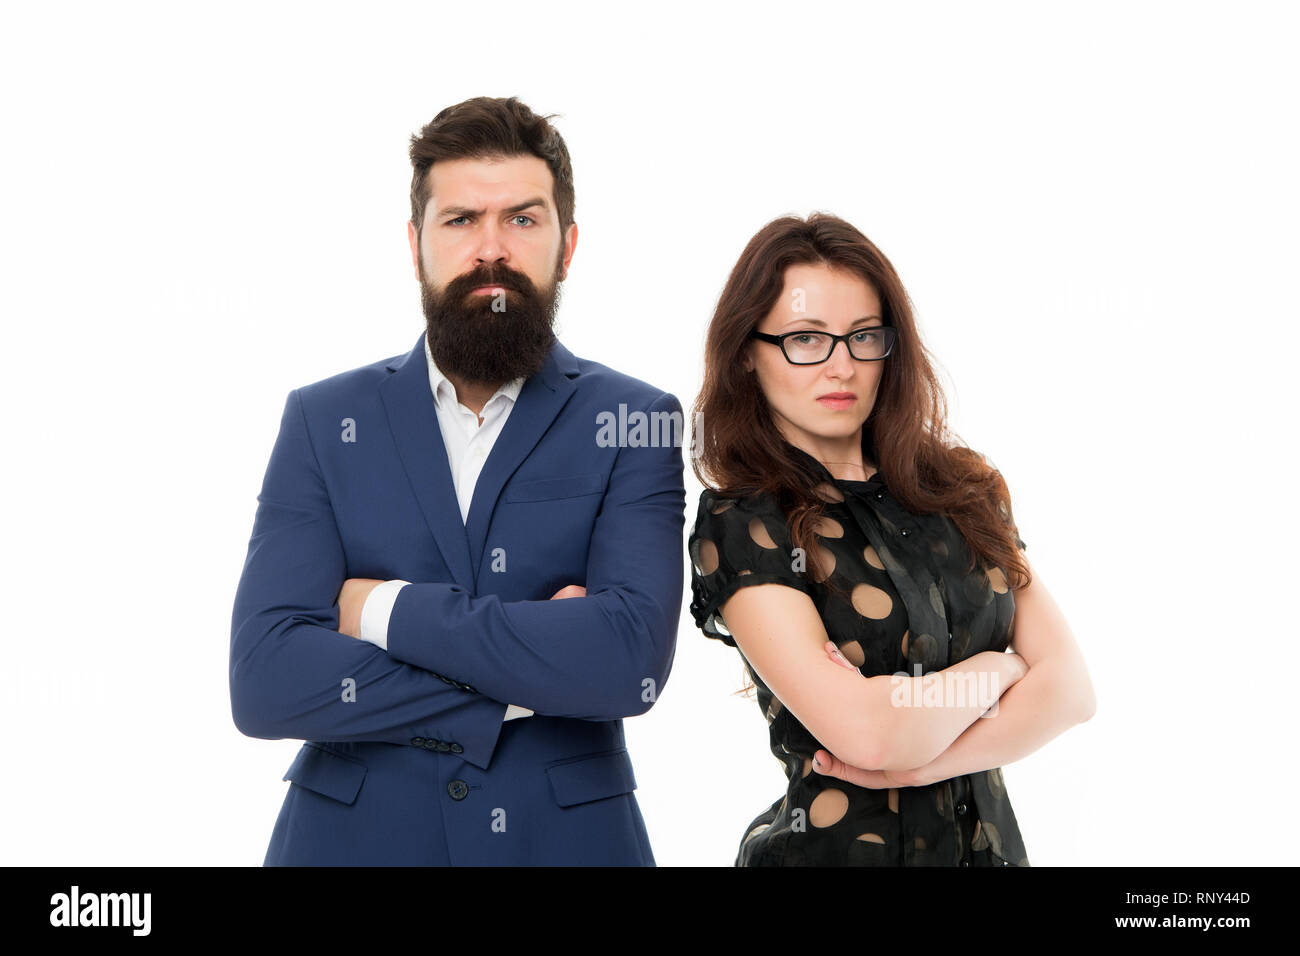 Couple colleagues man with beard and pretty woman on white background. Business partners leadership and cooperation balance. Office job and business. Business concept. Nothing personal just business. - Stock Image